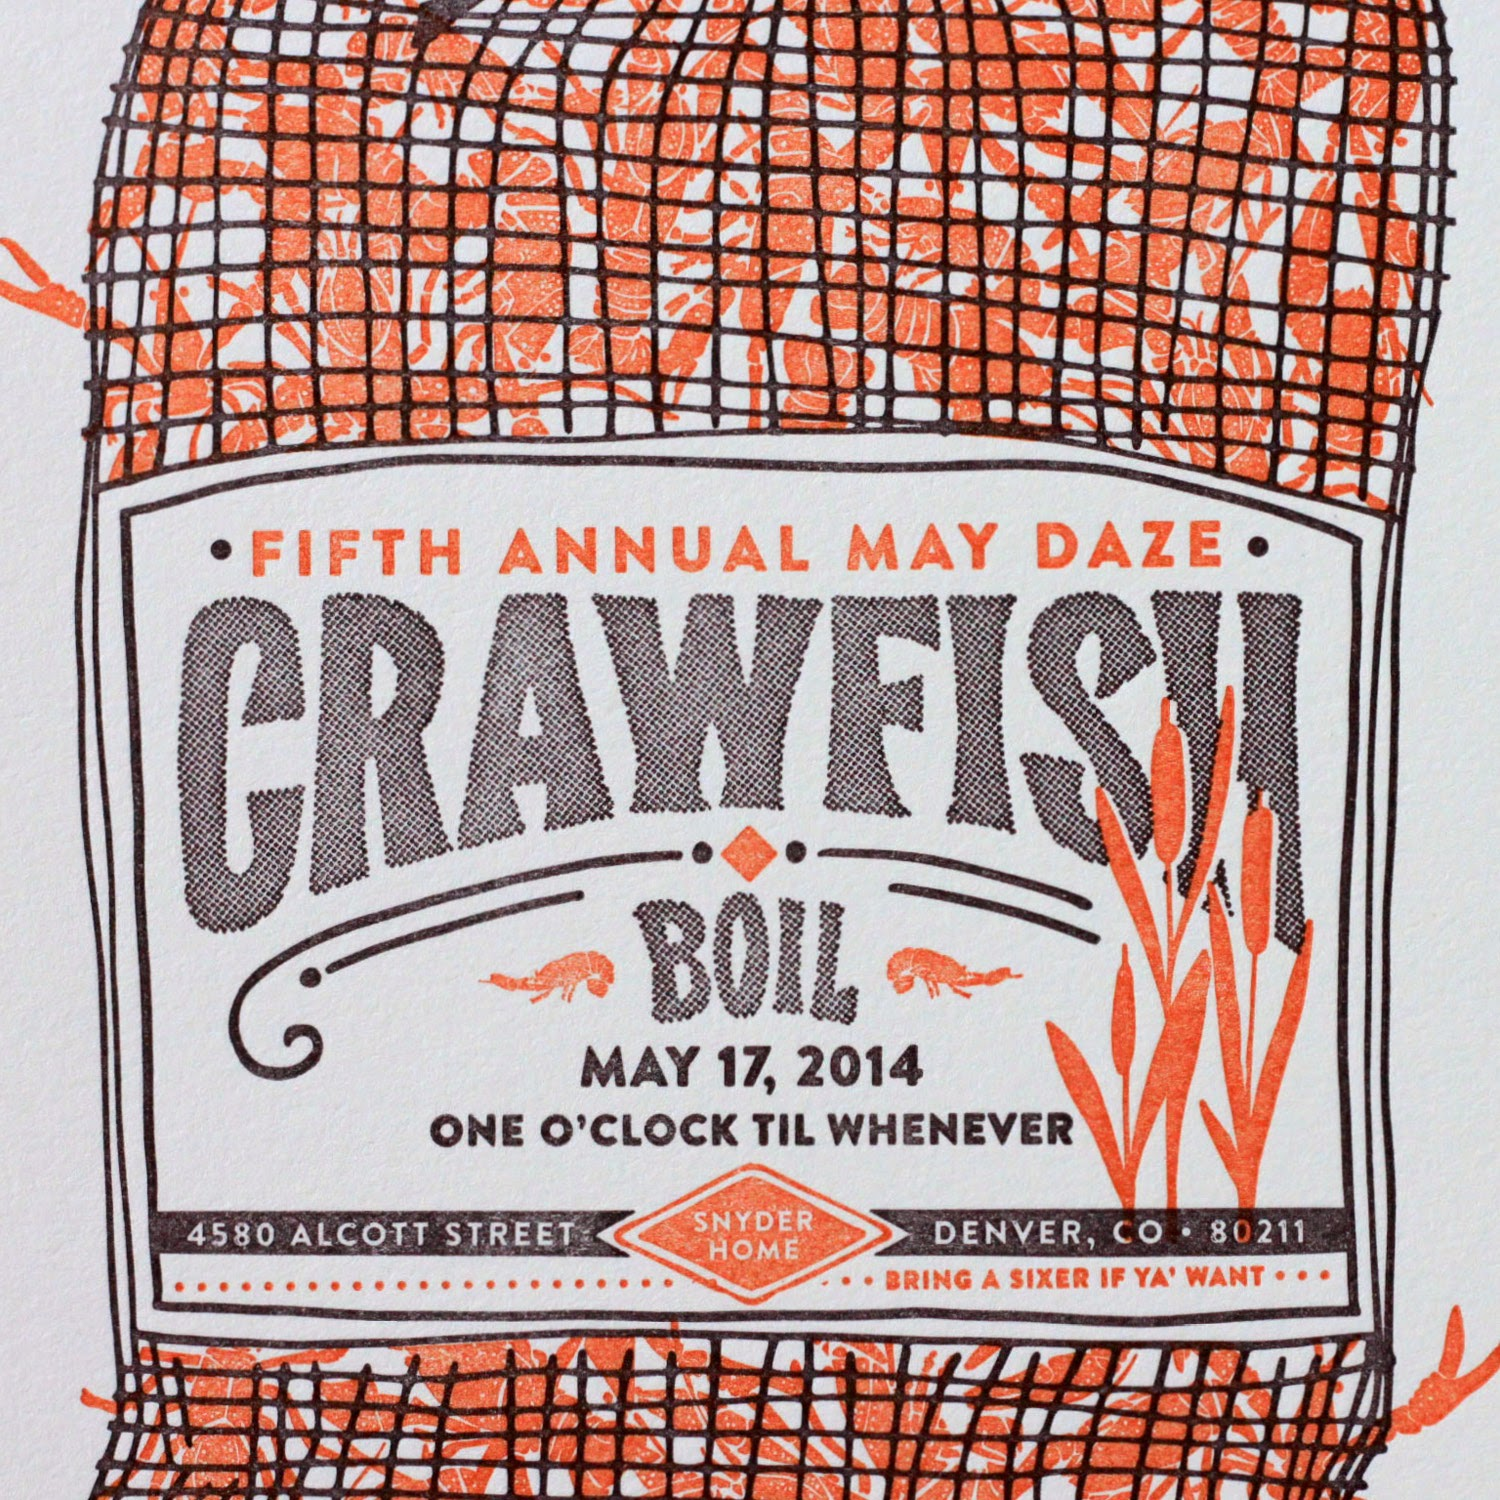 Time to Sack Up: Fifth Annual Crawfish Boil Invitation